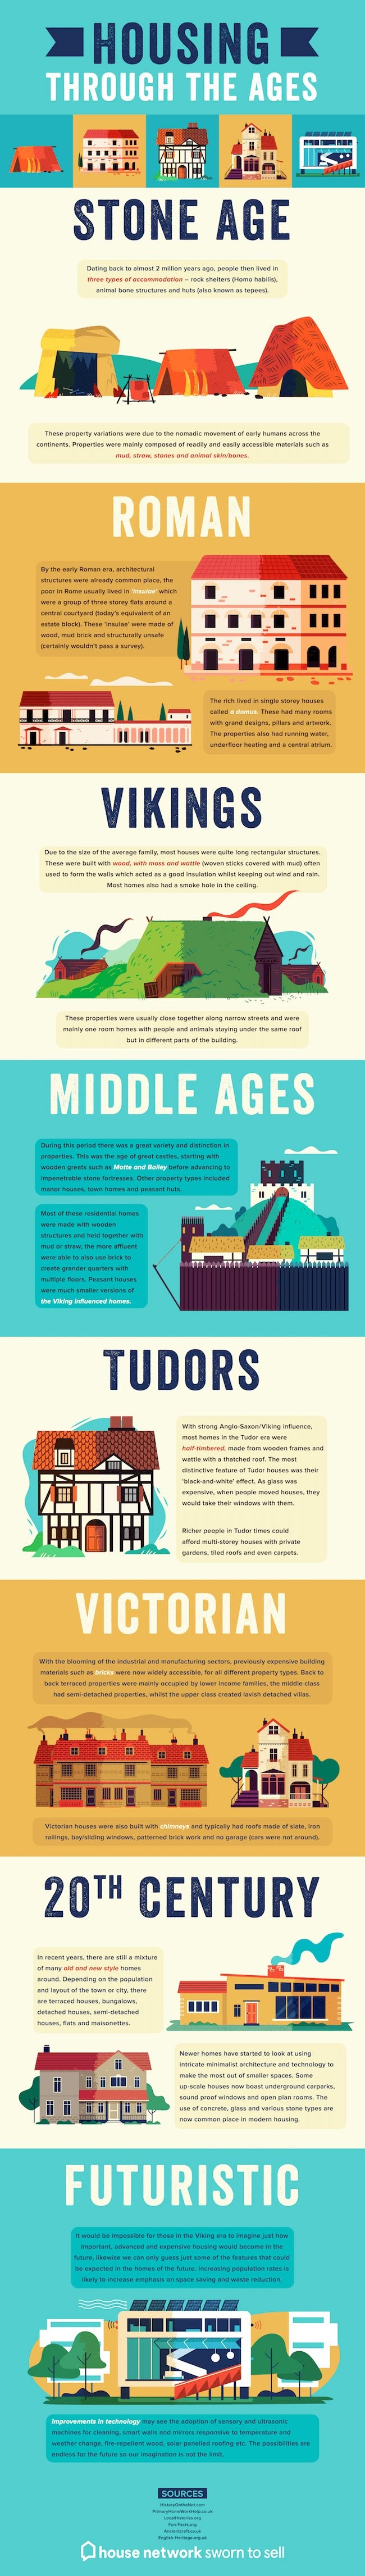 Housing Through the Ages #Infographic